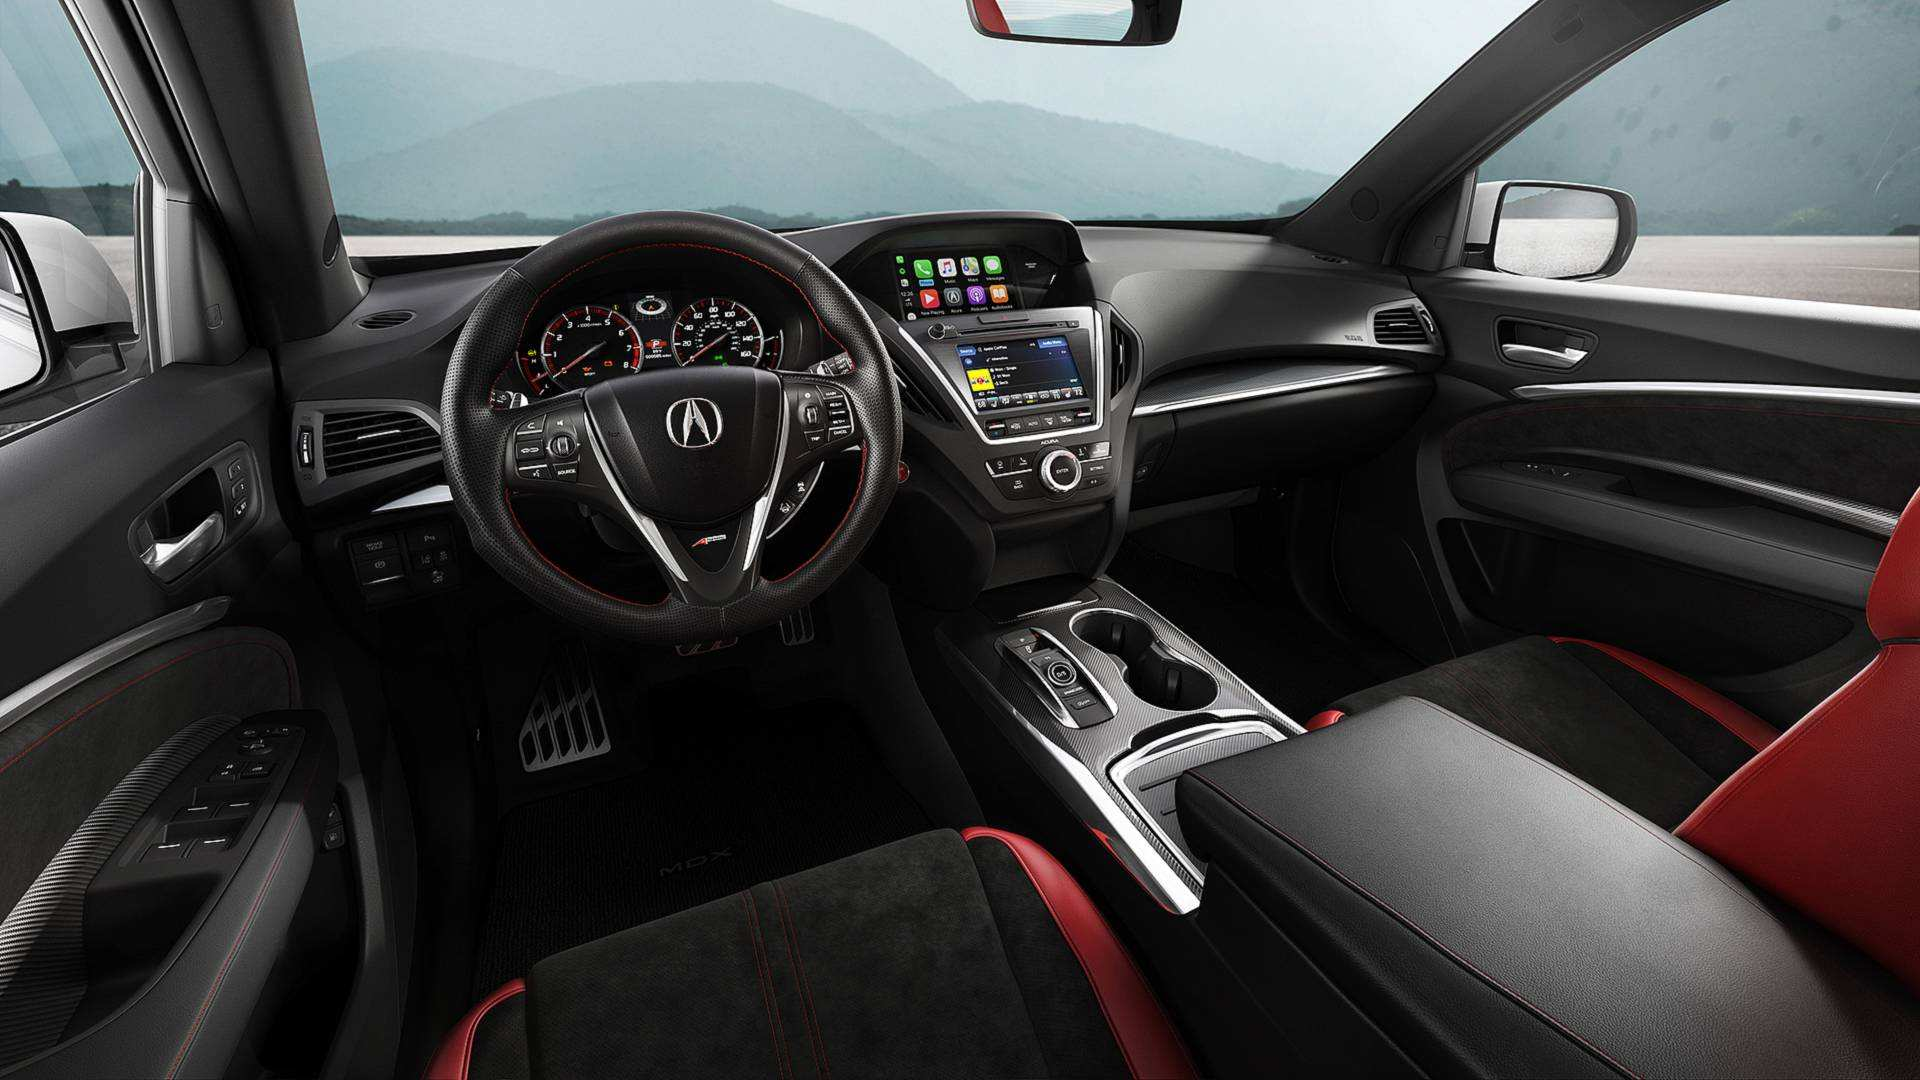 29 New Acura Mdx 2020 Interior Specs and Review for Acura Mdx 2020 Interior